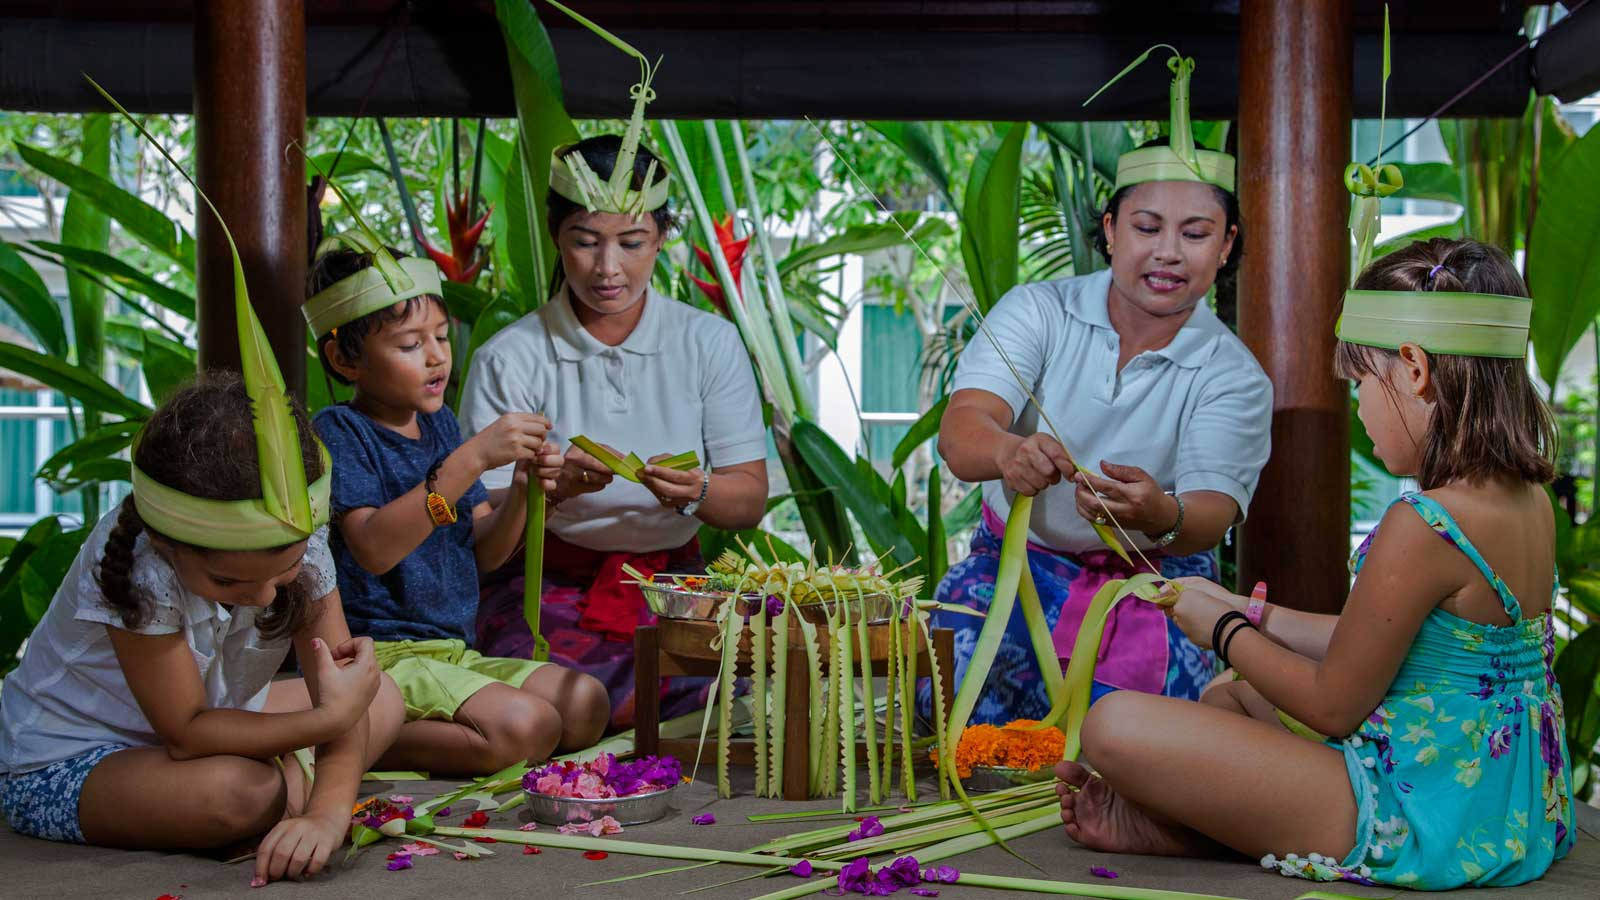 Kids Club Activities | The Sakala Resort Bali